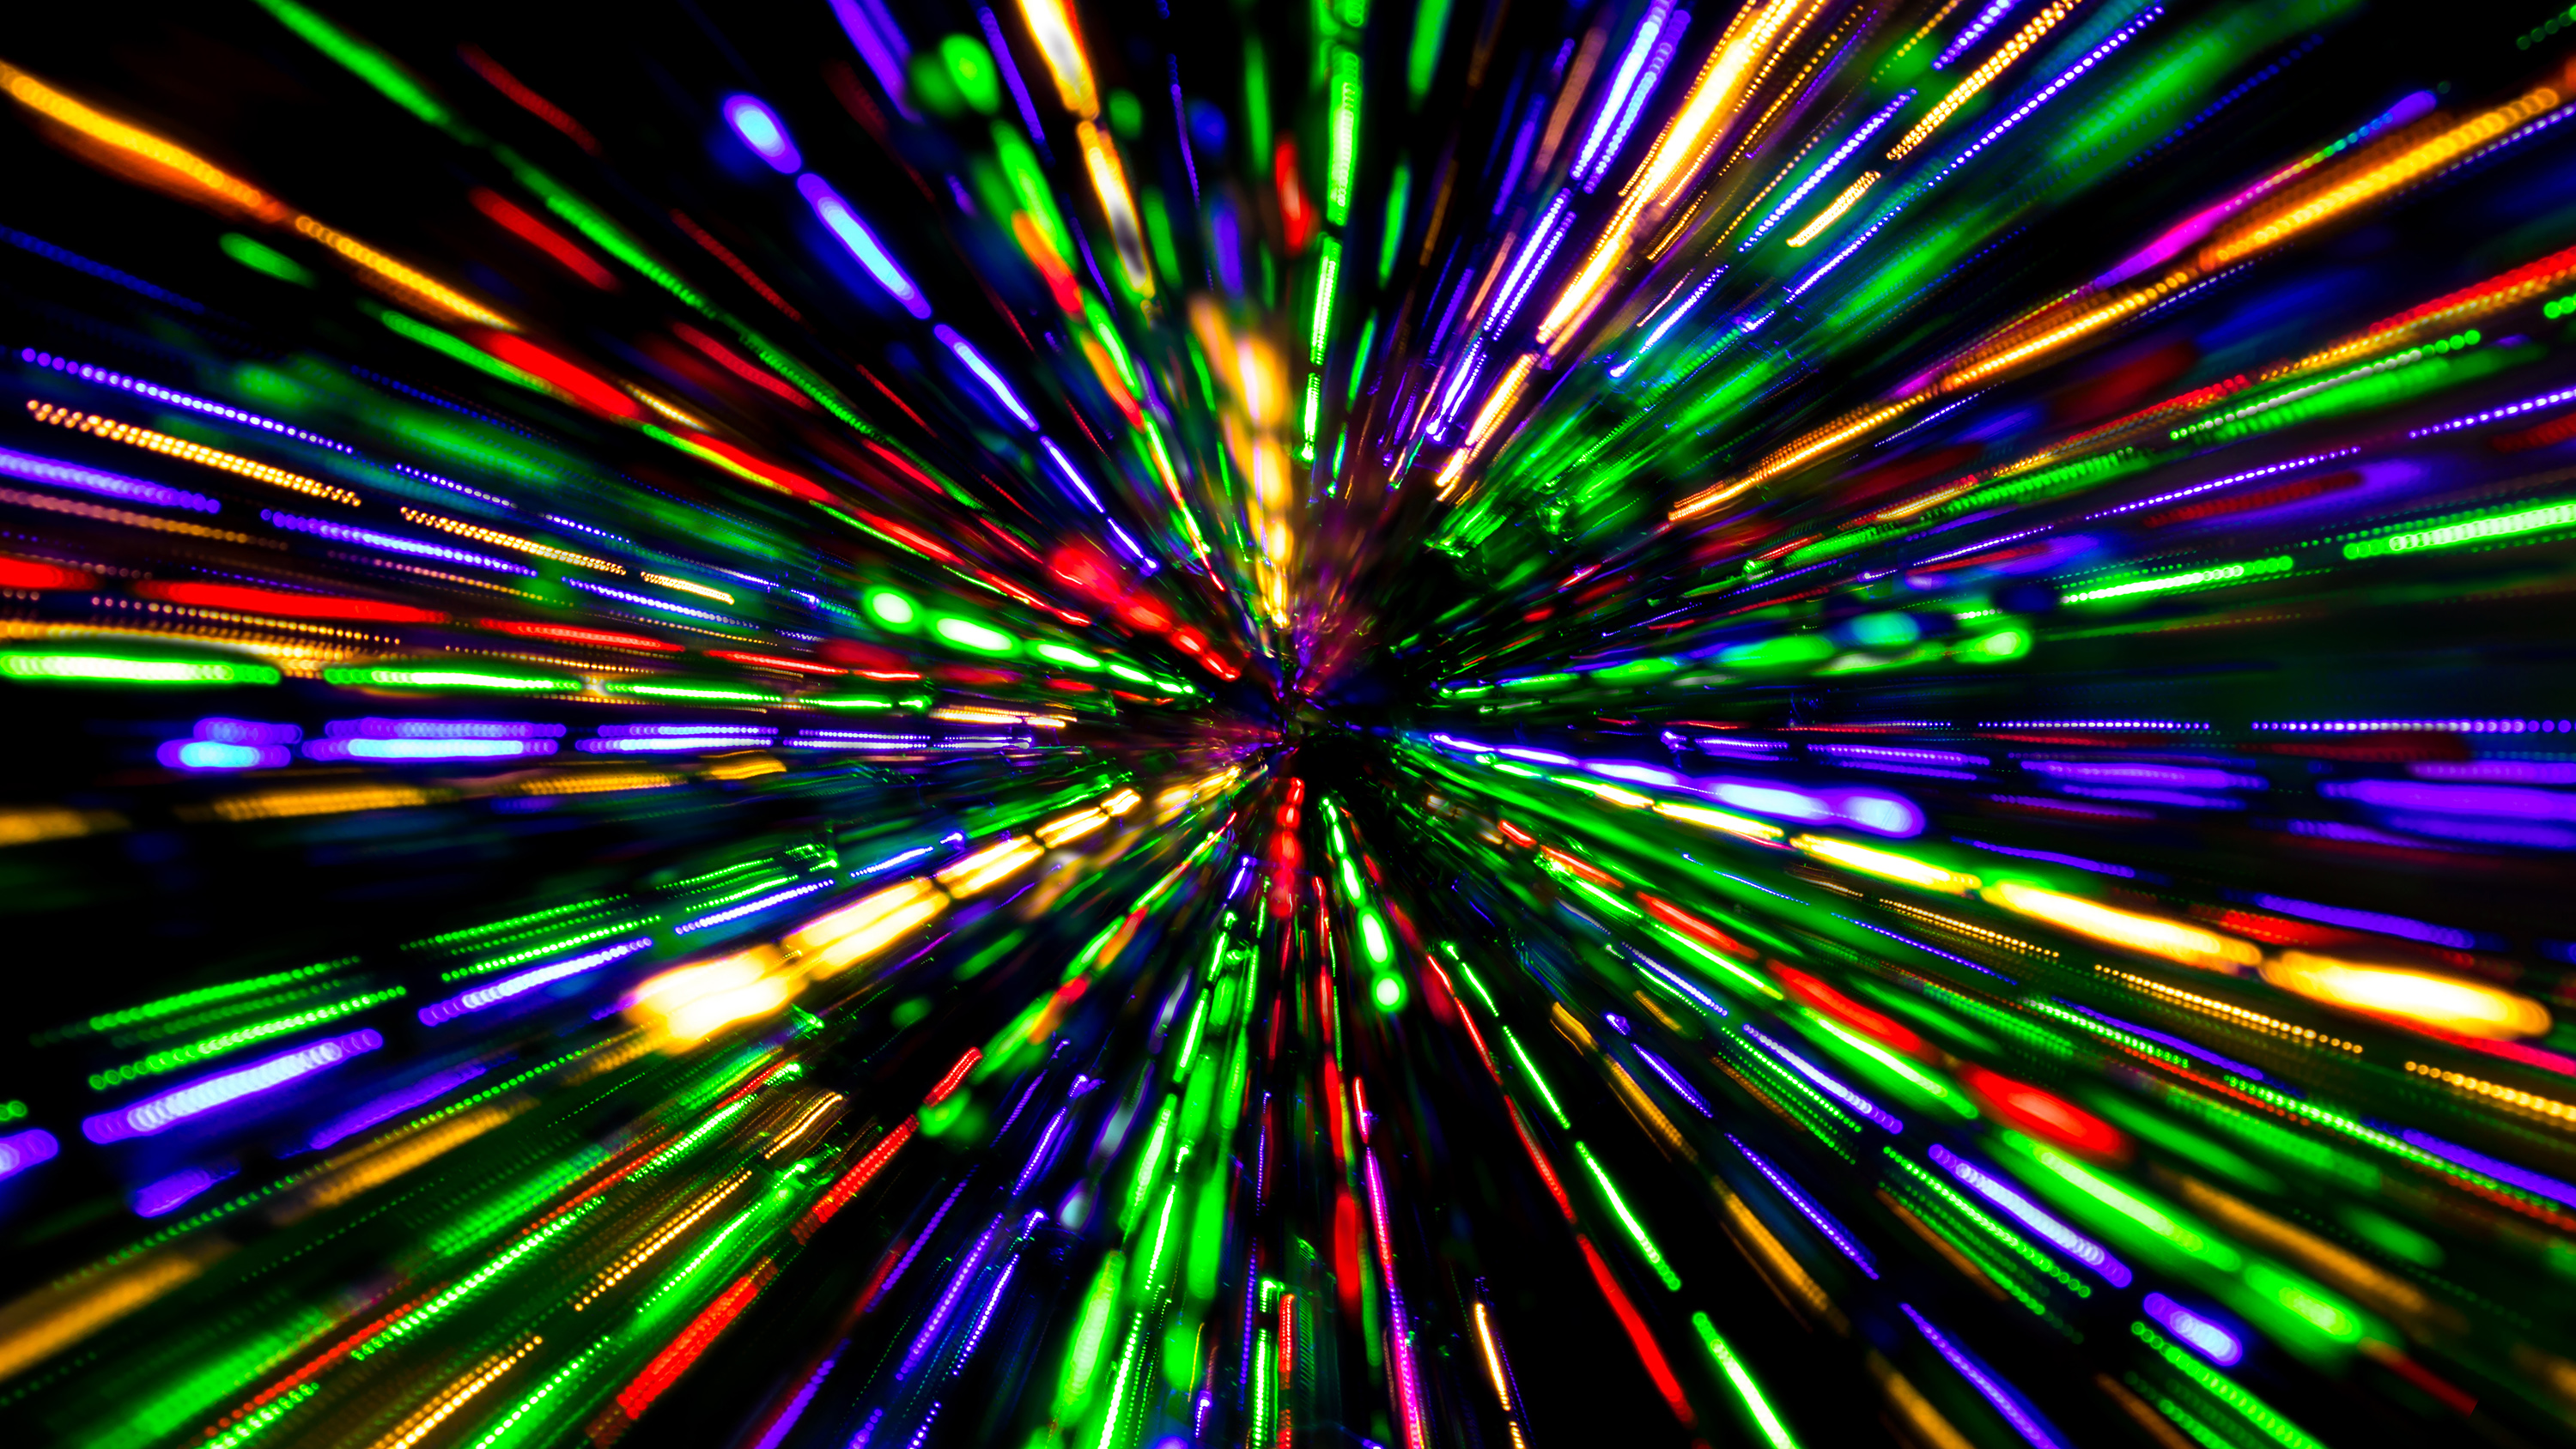 Broadband evolution: CUPS and 5G convergence